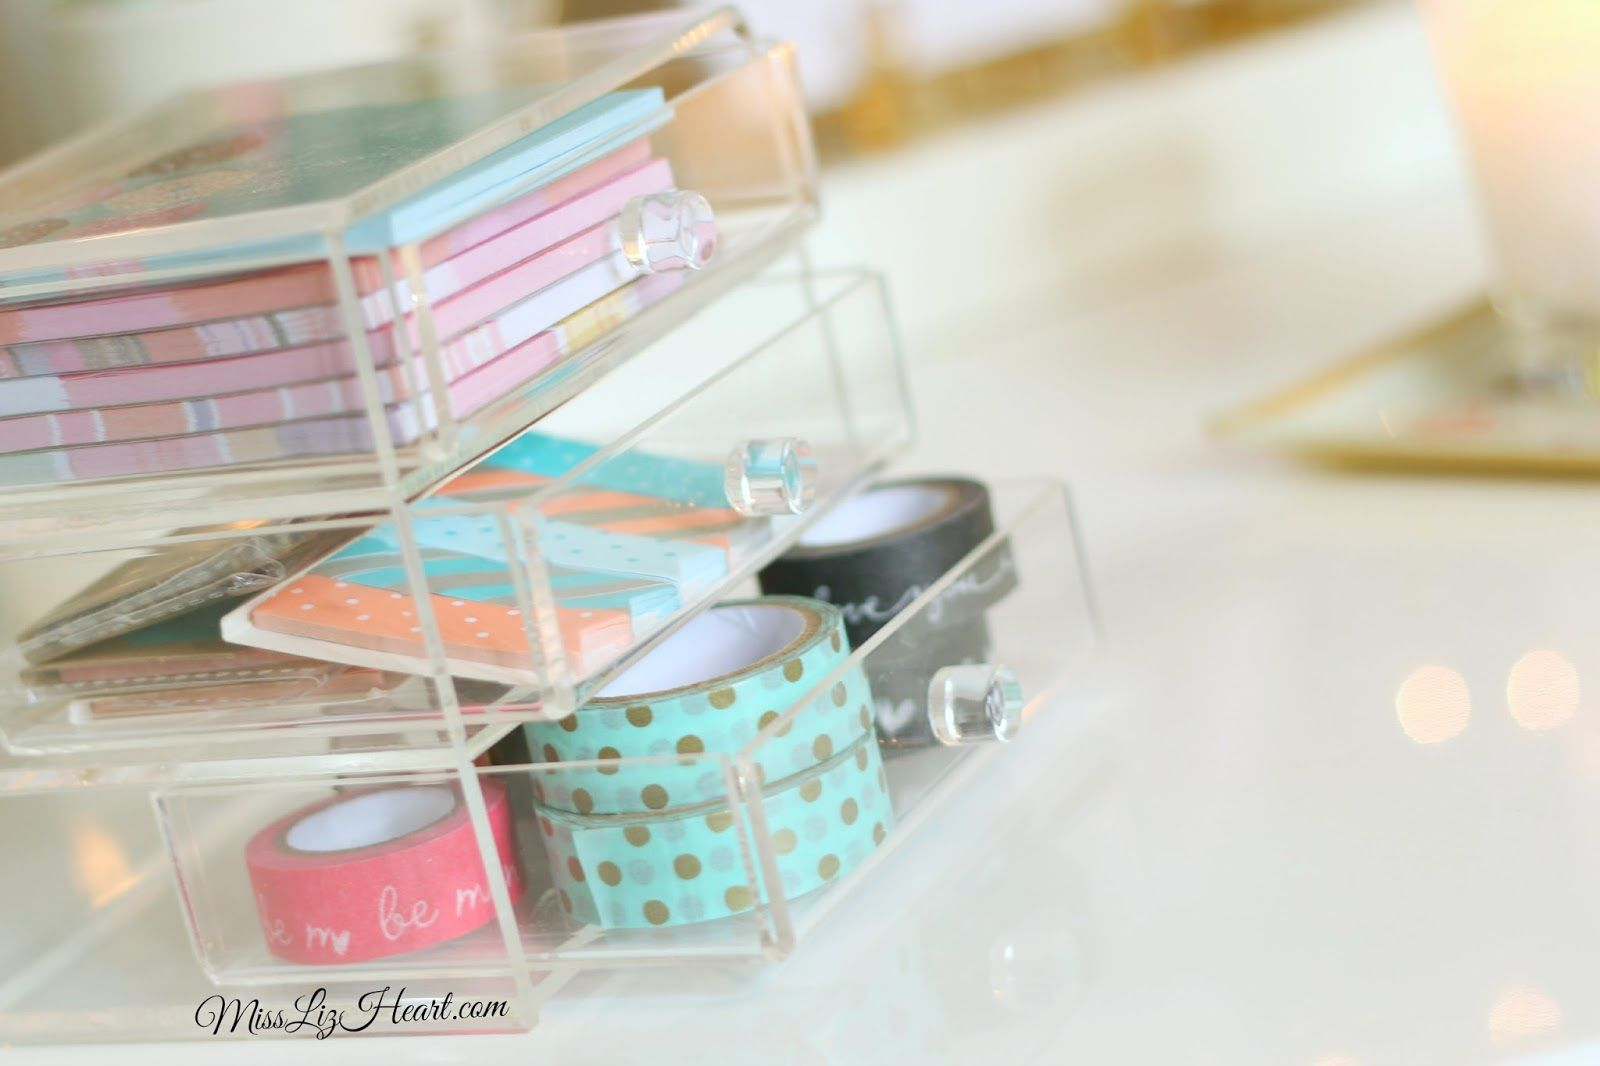 Store planner supplies in acrylic drawers so you can see them!